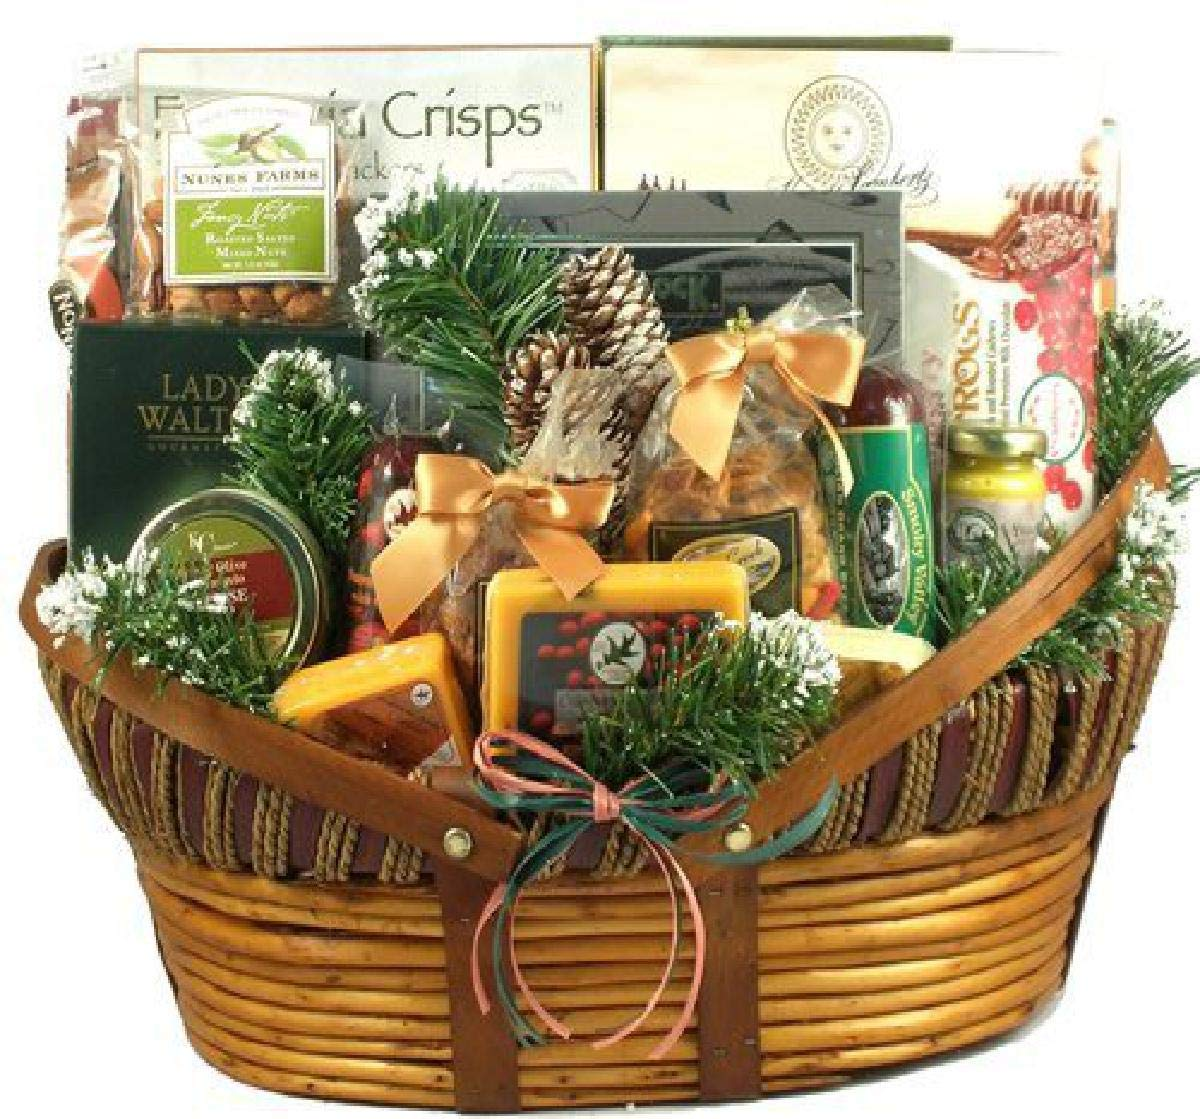 Gift Basket Village Home For The Holidays, Christmas Gift Basket With Unique Wisconsin Meats And Cheeses, Mixed Nuts, Sweets And More (XL), 16 Pounds